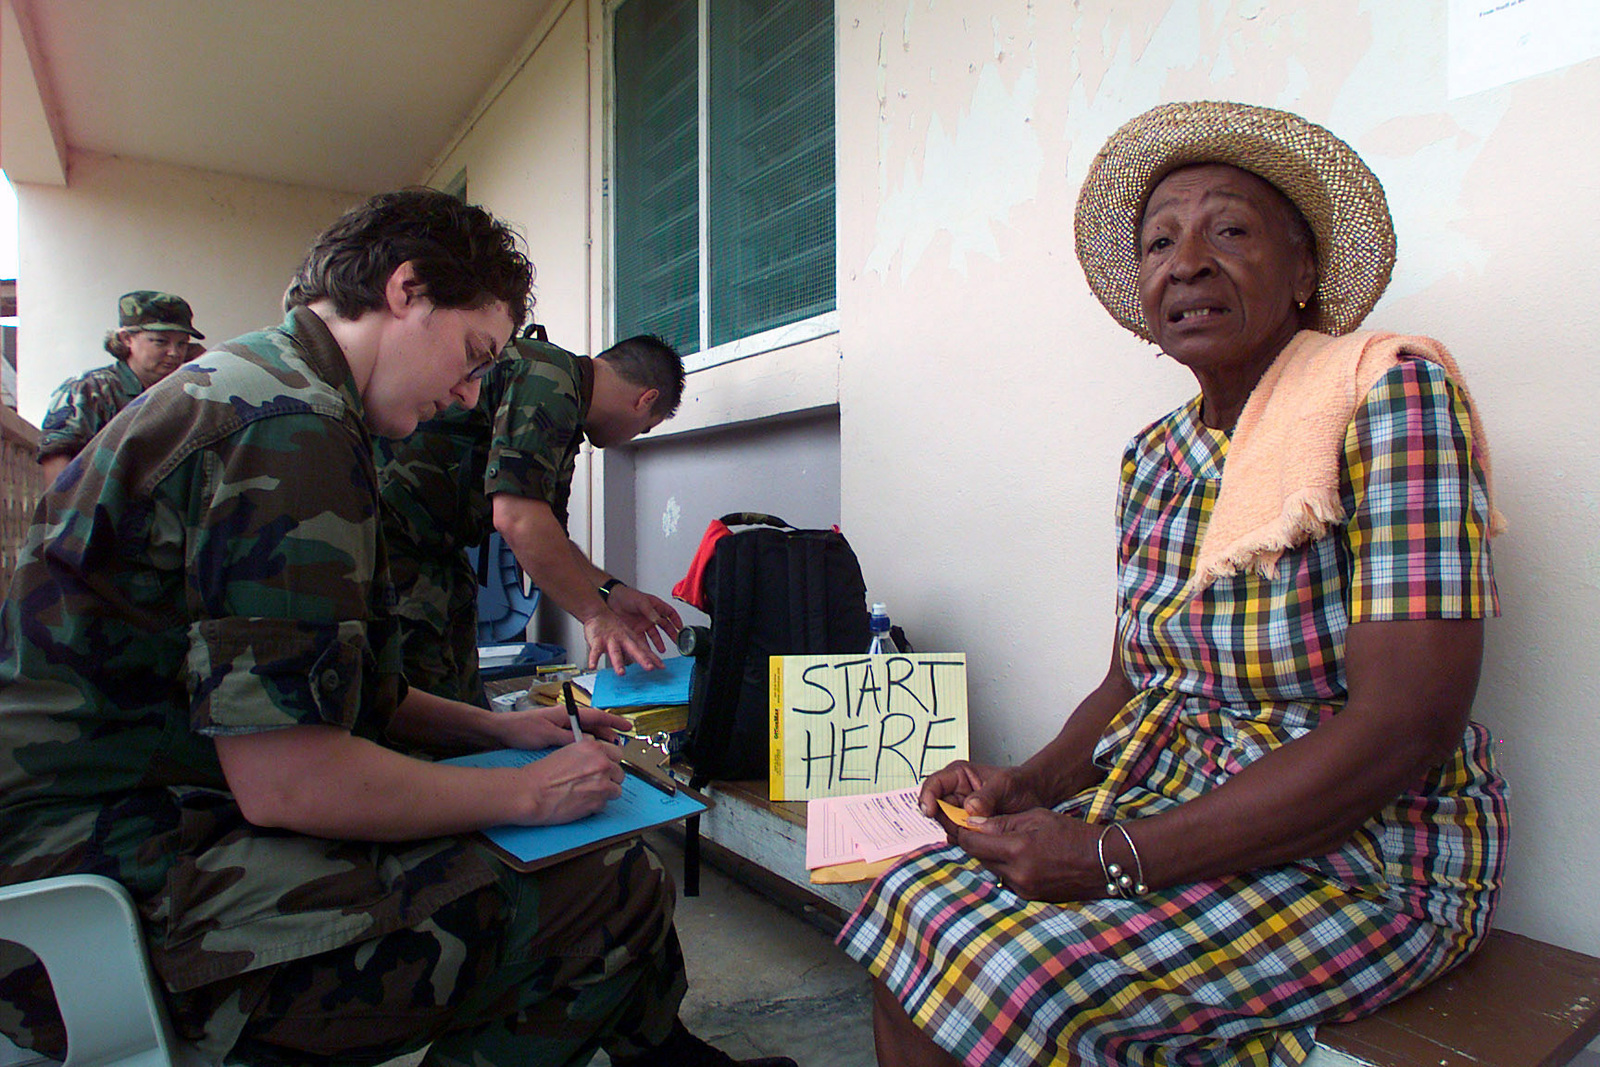 US Air Force (USAF) Captain (CPT) Patricia J. Beebe (left), 146th Medical Squadron, California Air National Guard (ANG) records a patients vital information outside the Punta Gorda Hospital, at Punta Gorda, Belize, during a 15-day Medical Humanitarian Operation called Medrete 03. During the Operation over 3,600 patients were treated and help was deliver to people affected by Hurricane Iris